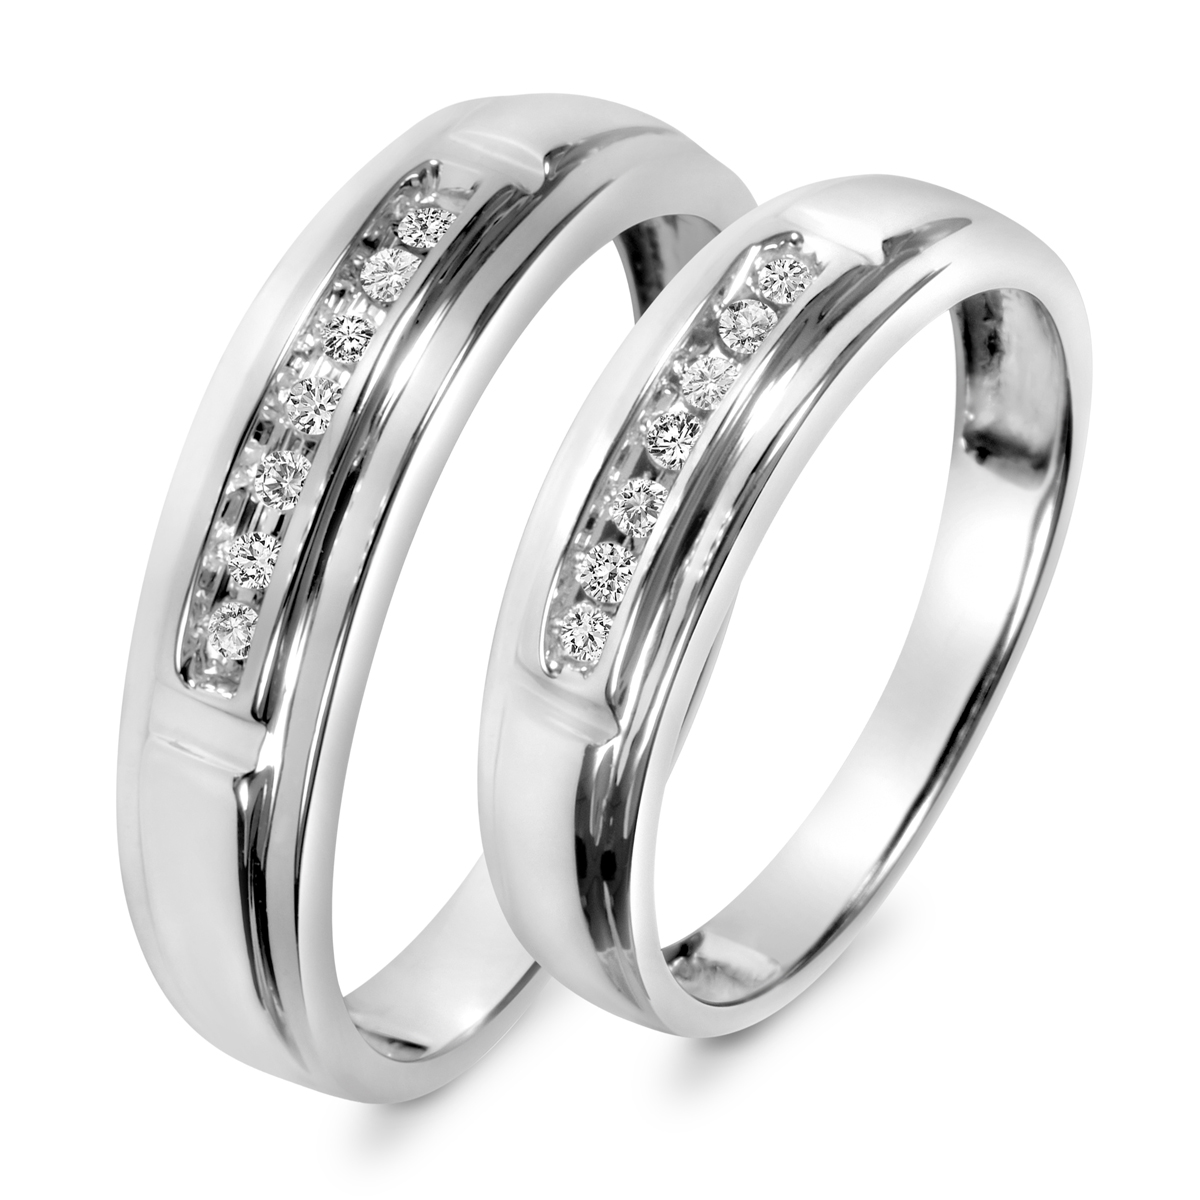 1_1_8_Carat_T.W._Diamond_His_And_Hers_Wedding_Band_Set_10K